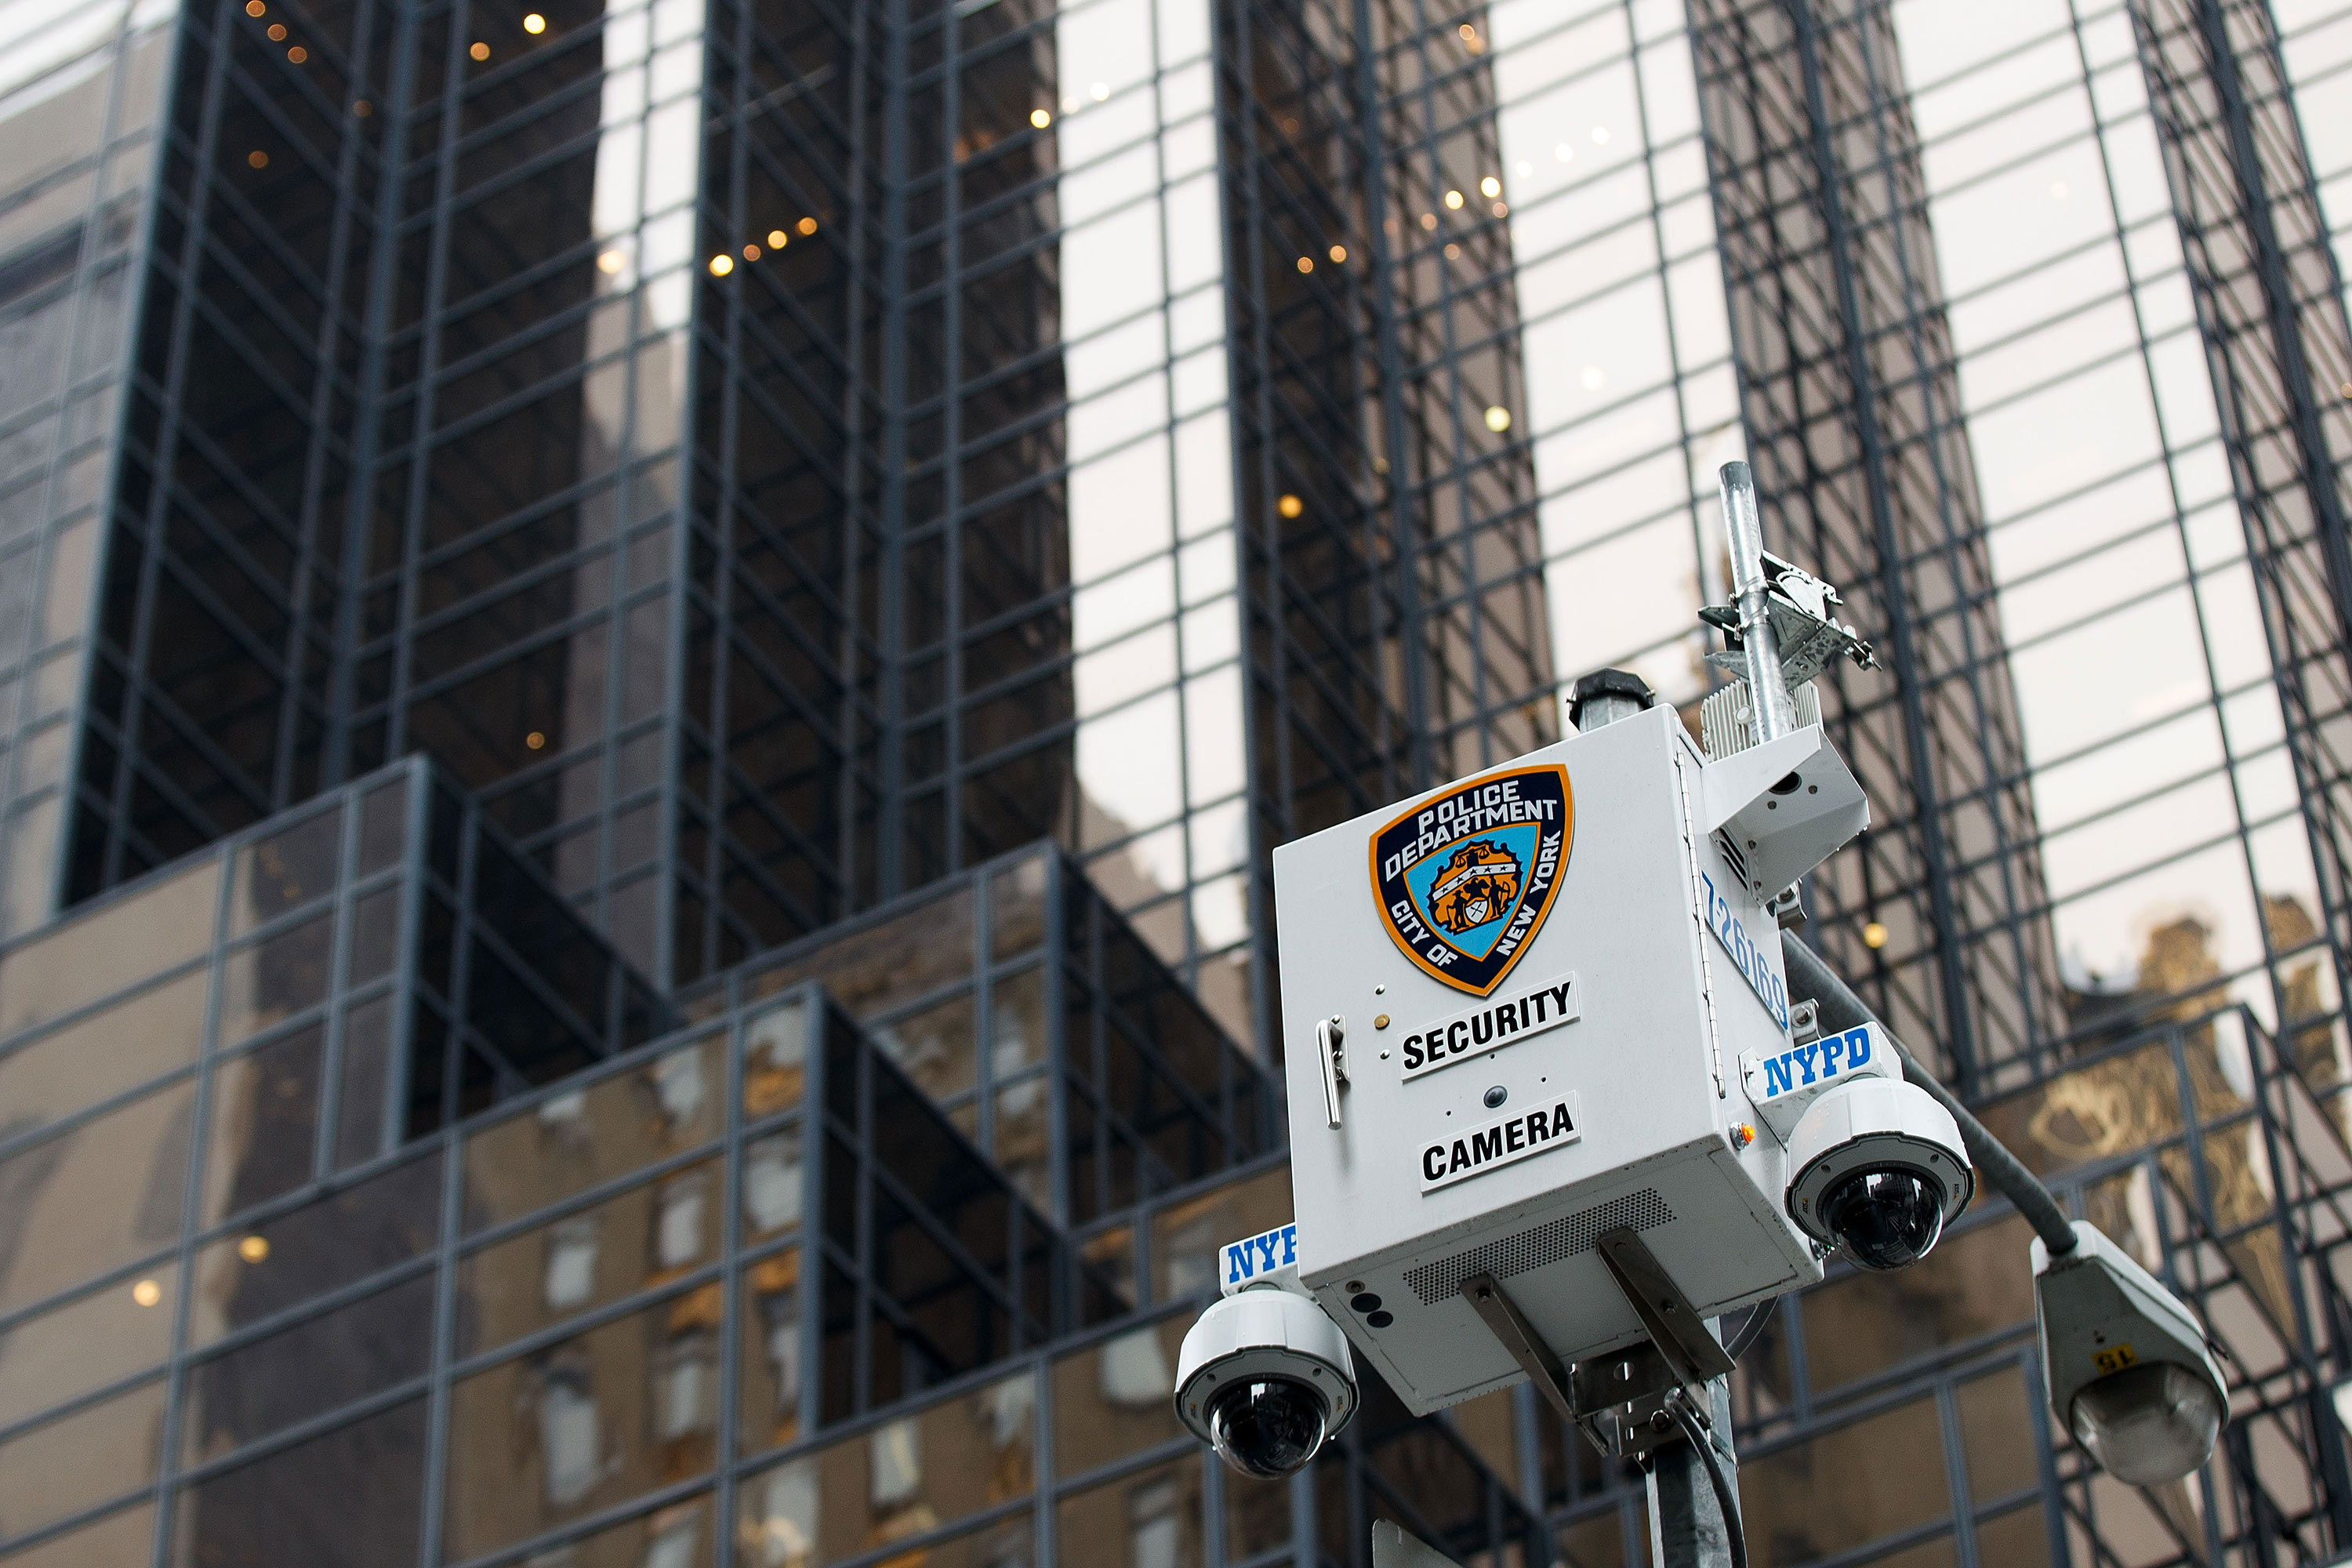 NYPD security camera box in front of Trump Tower